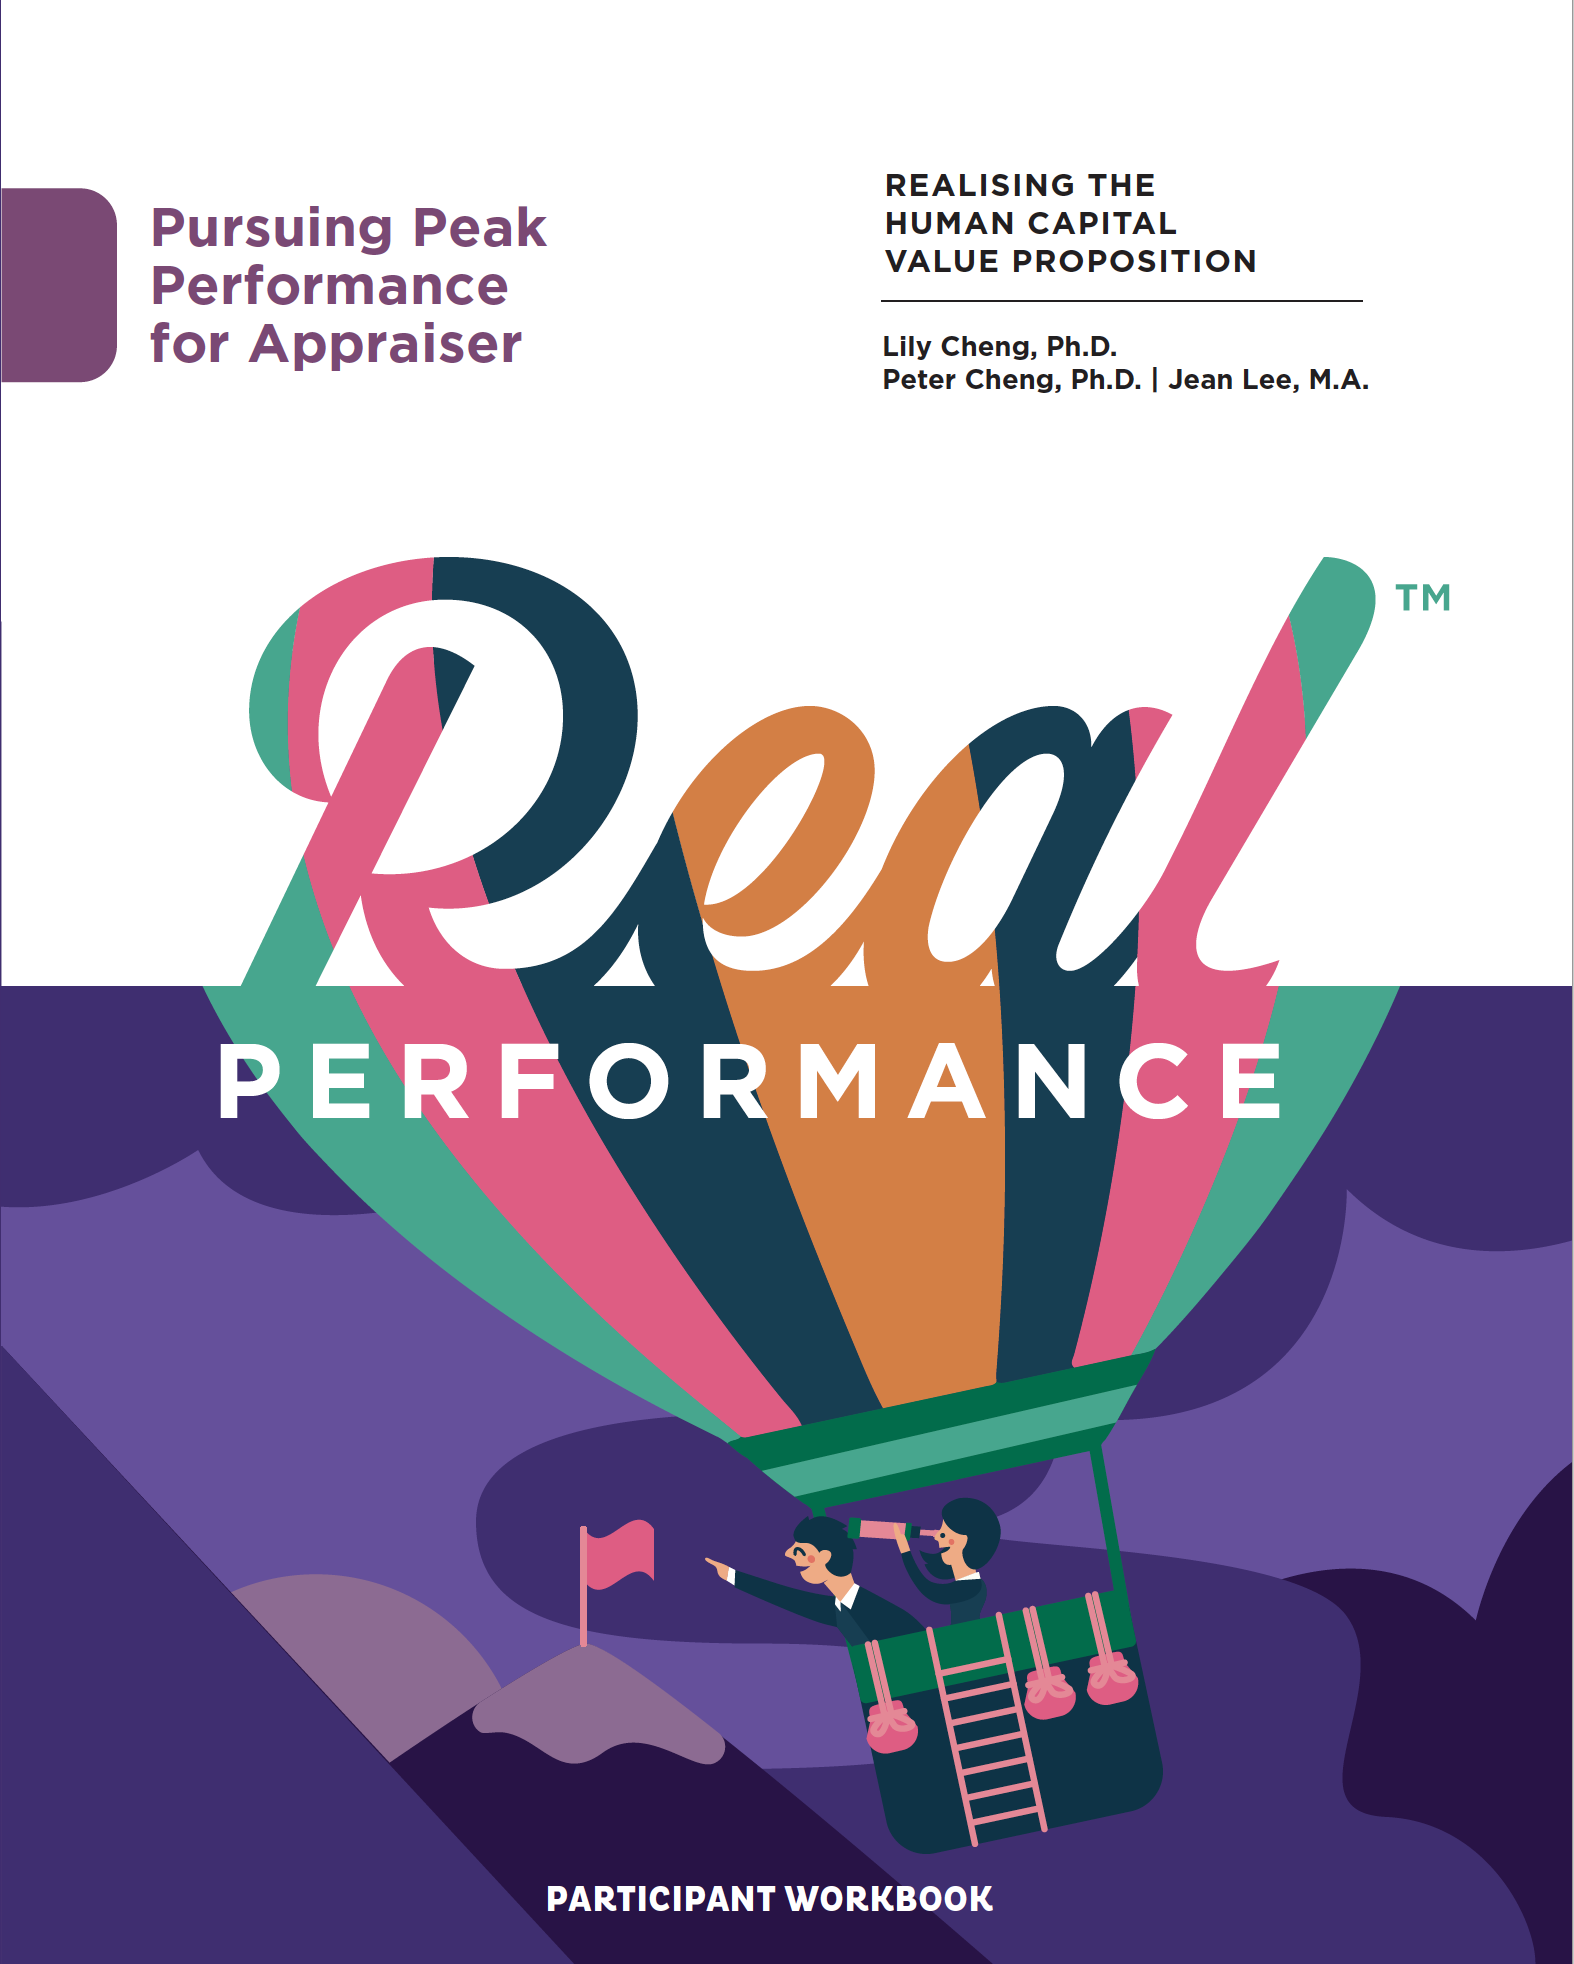 Real Performance by PACE OD Consulting - pursuing peak performance for appraiser